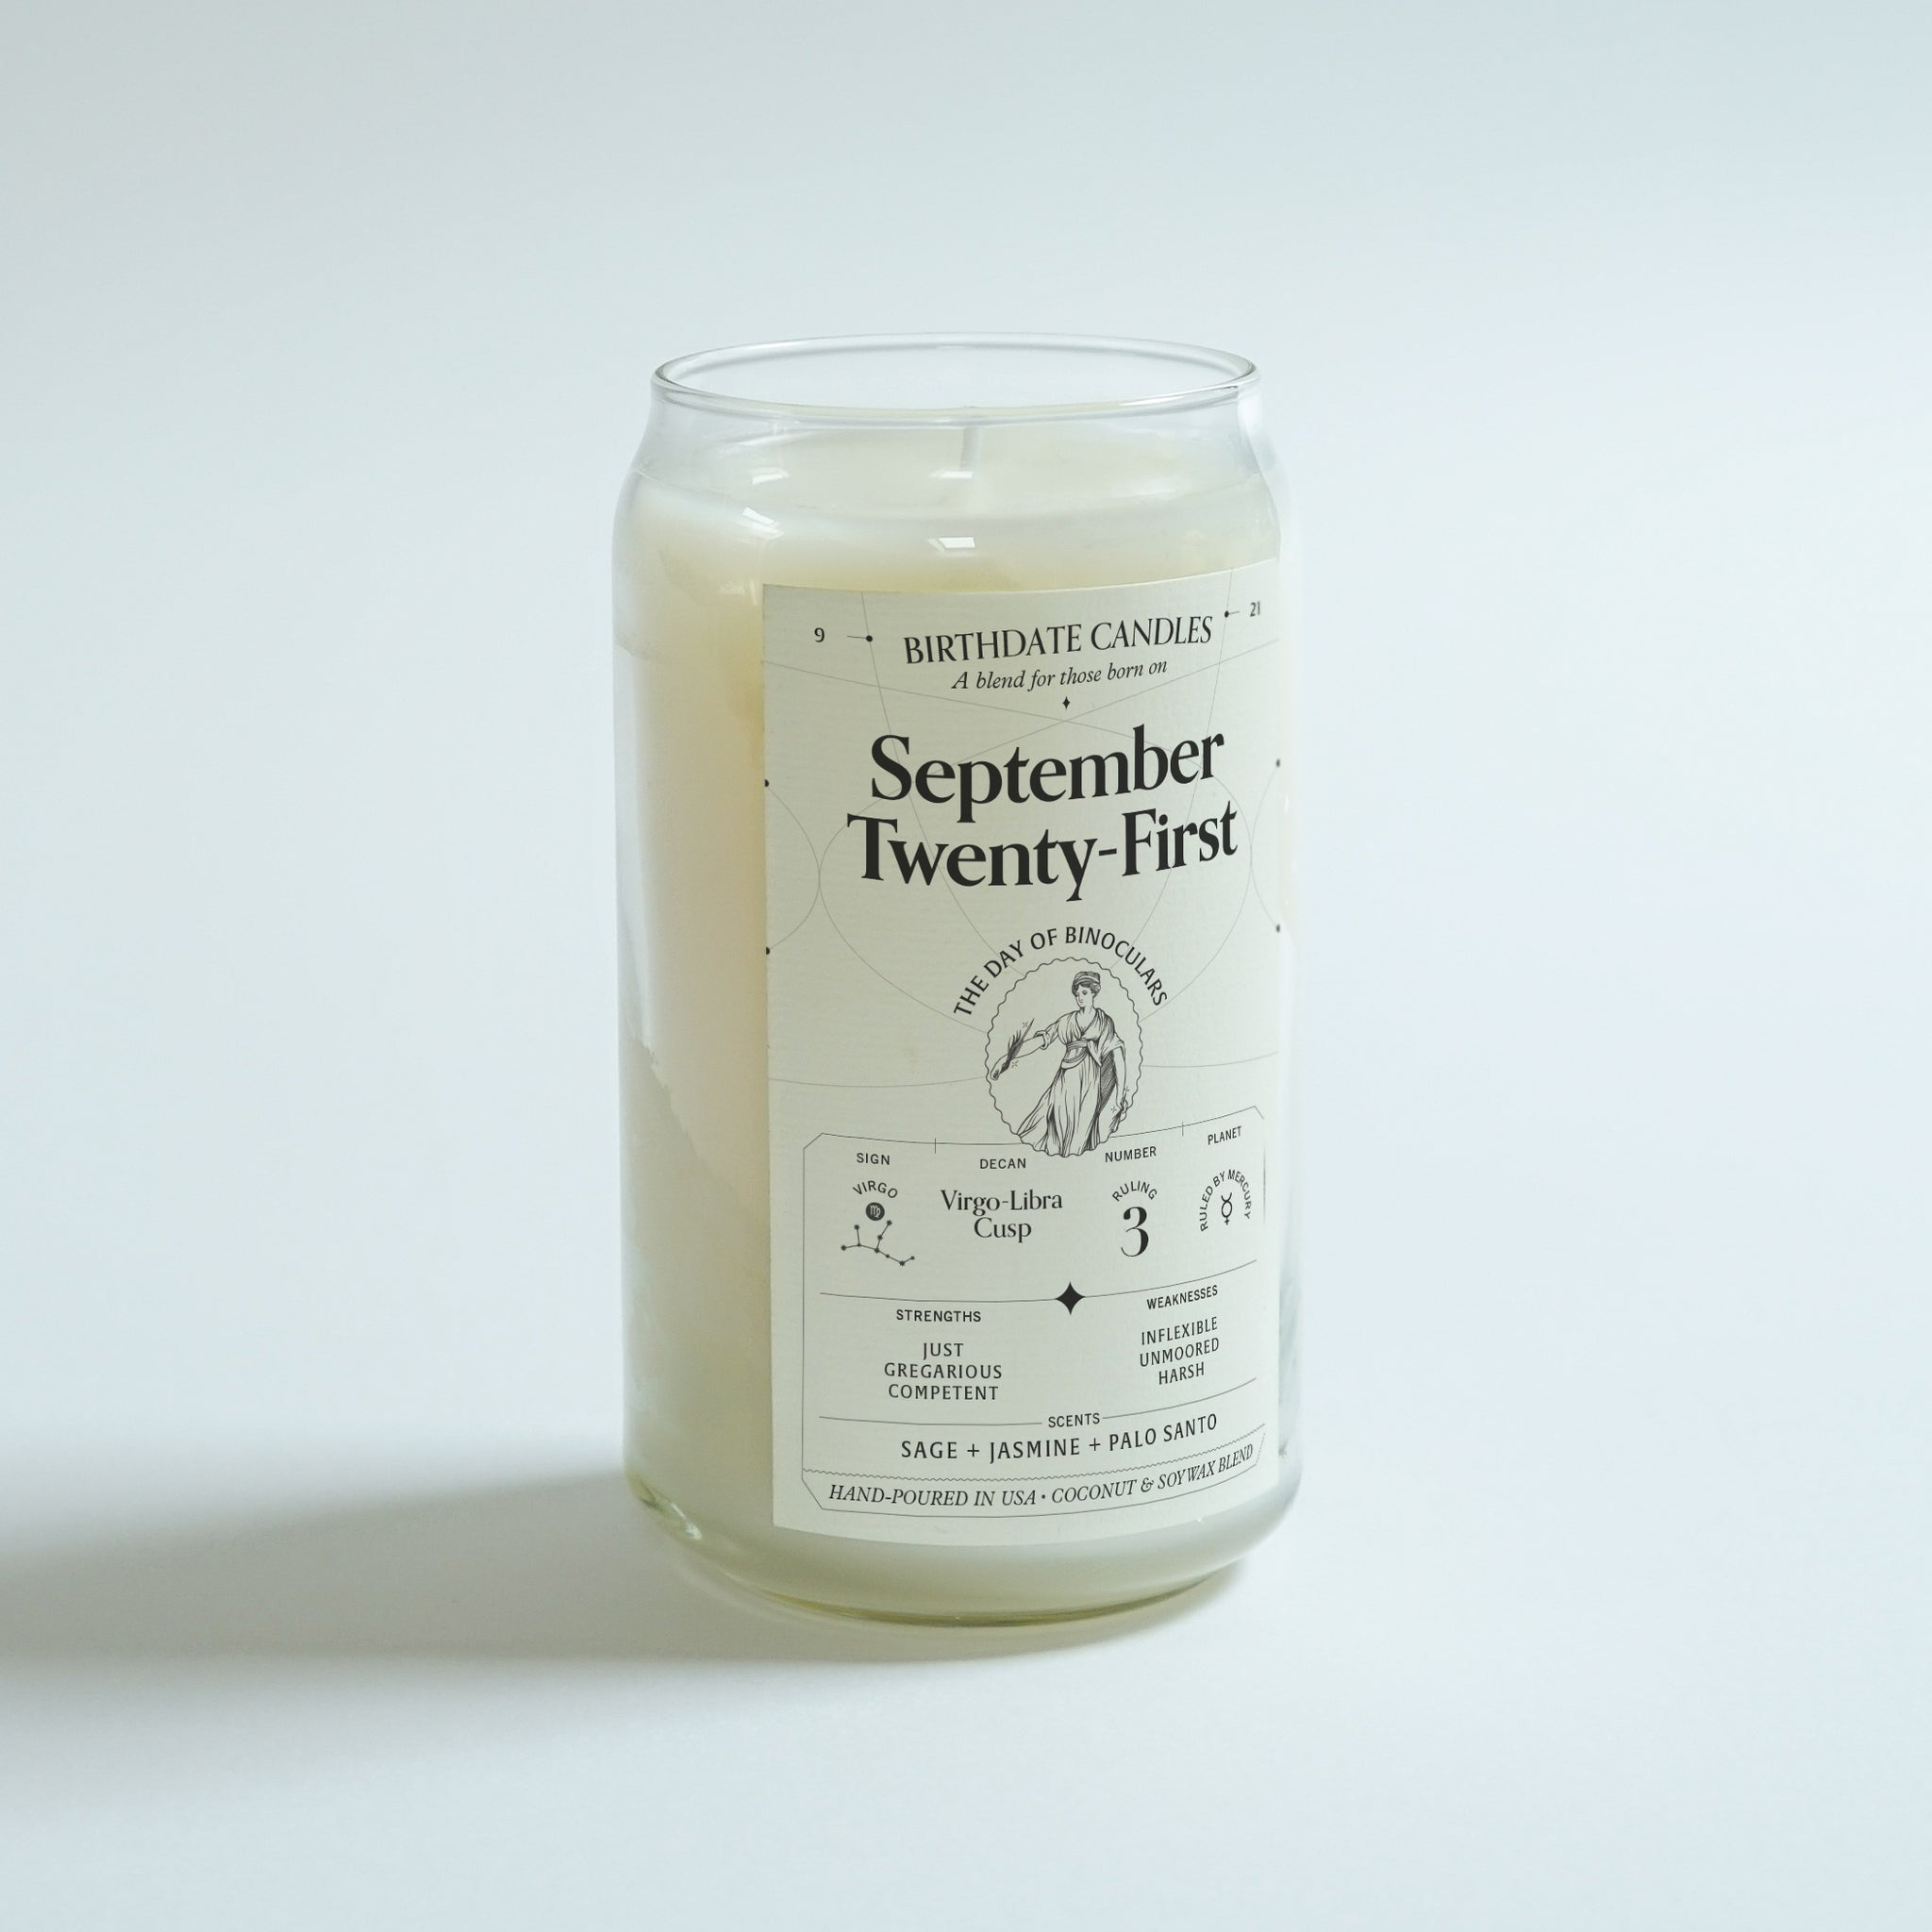 The September Twenty-First Birthday Candle